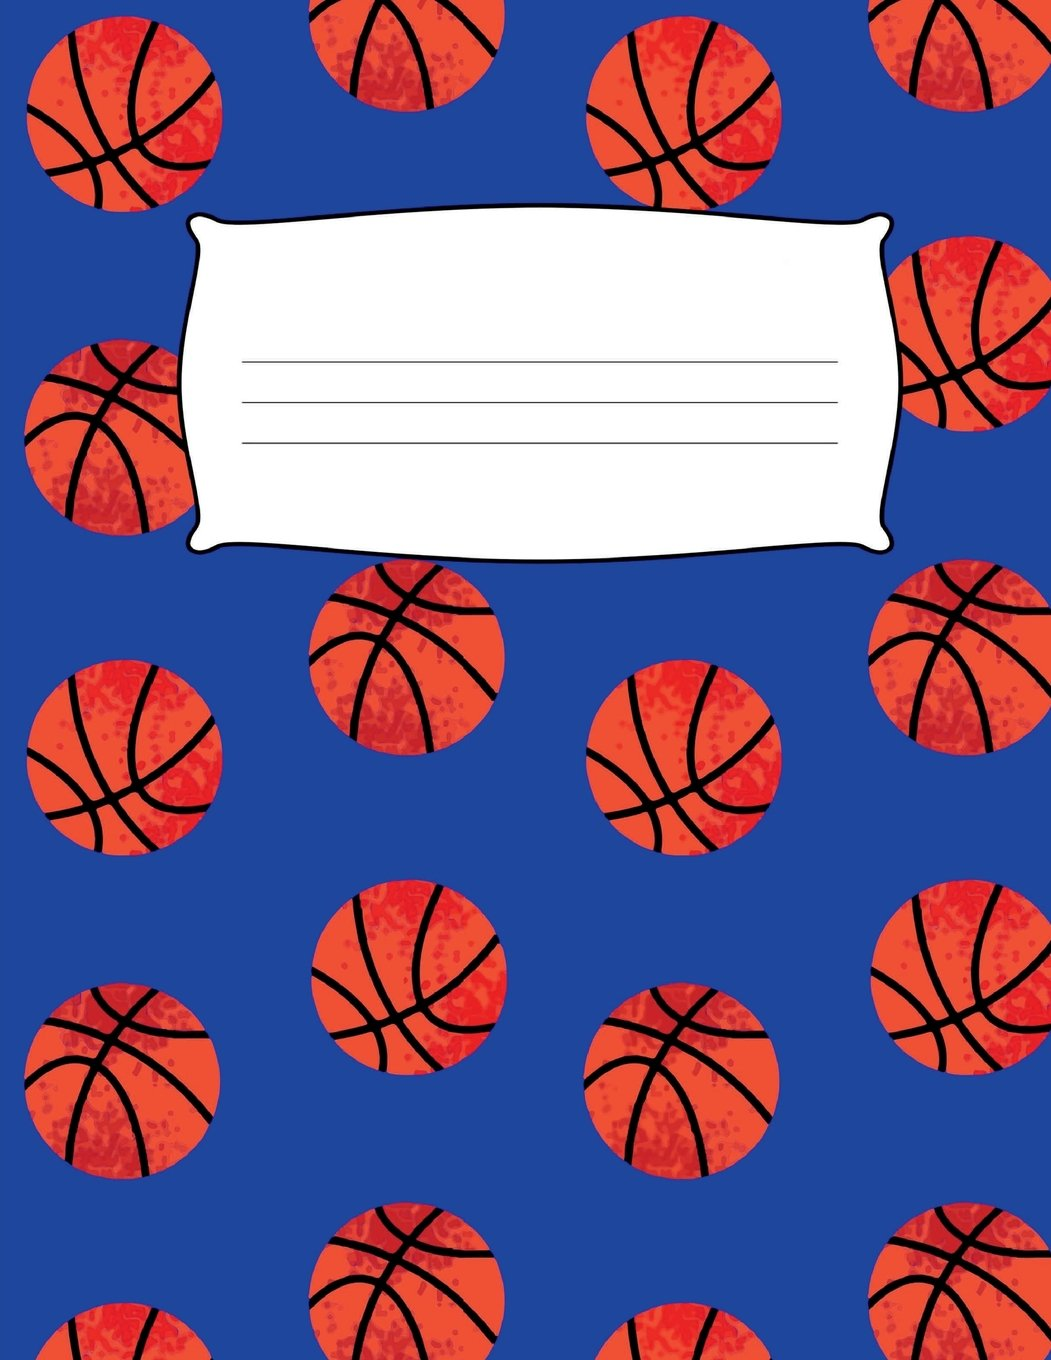 Download Kids Sport Basketball Primary Journal Composition Notebook for Elementary School: School Notepad: Basketball Balls Draw & Write Journal to Write & ... Page (66 Sheets) Note Book Pad, Sketchbook PDF